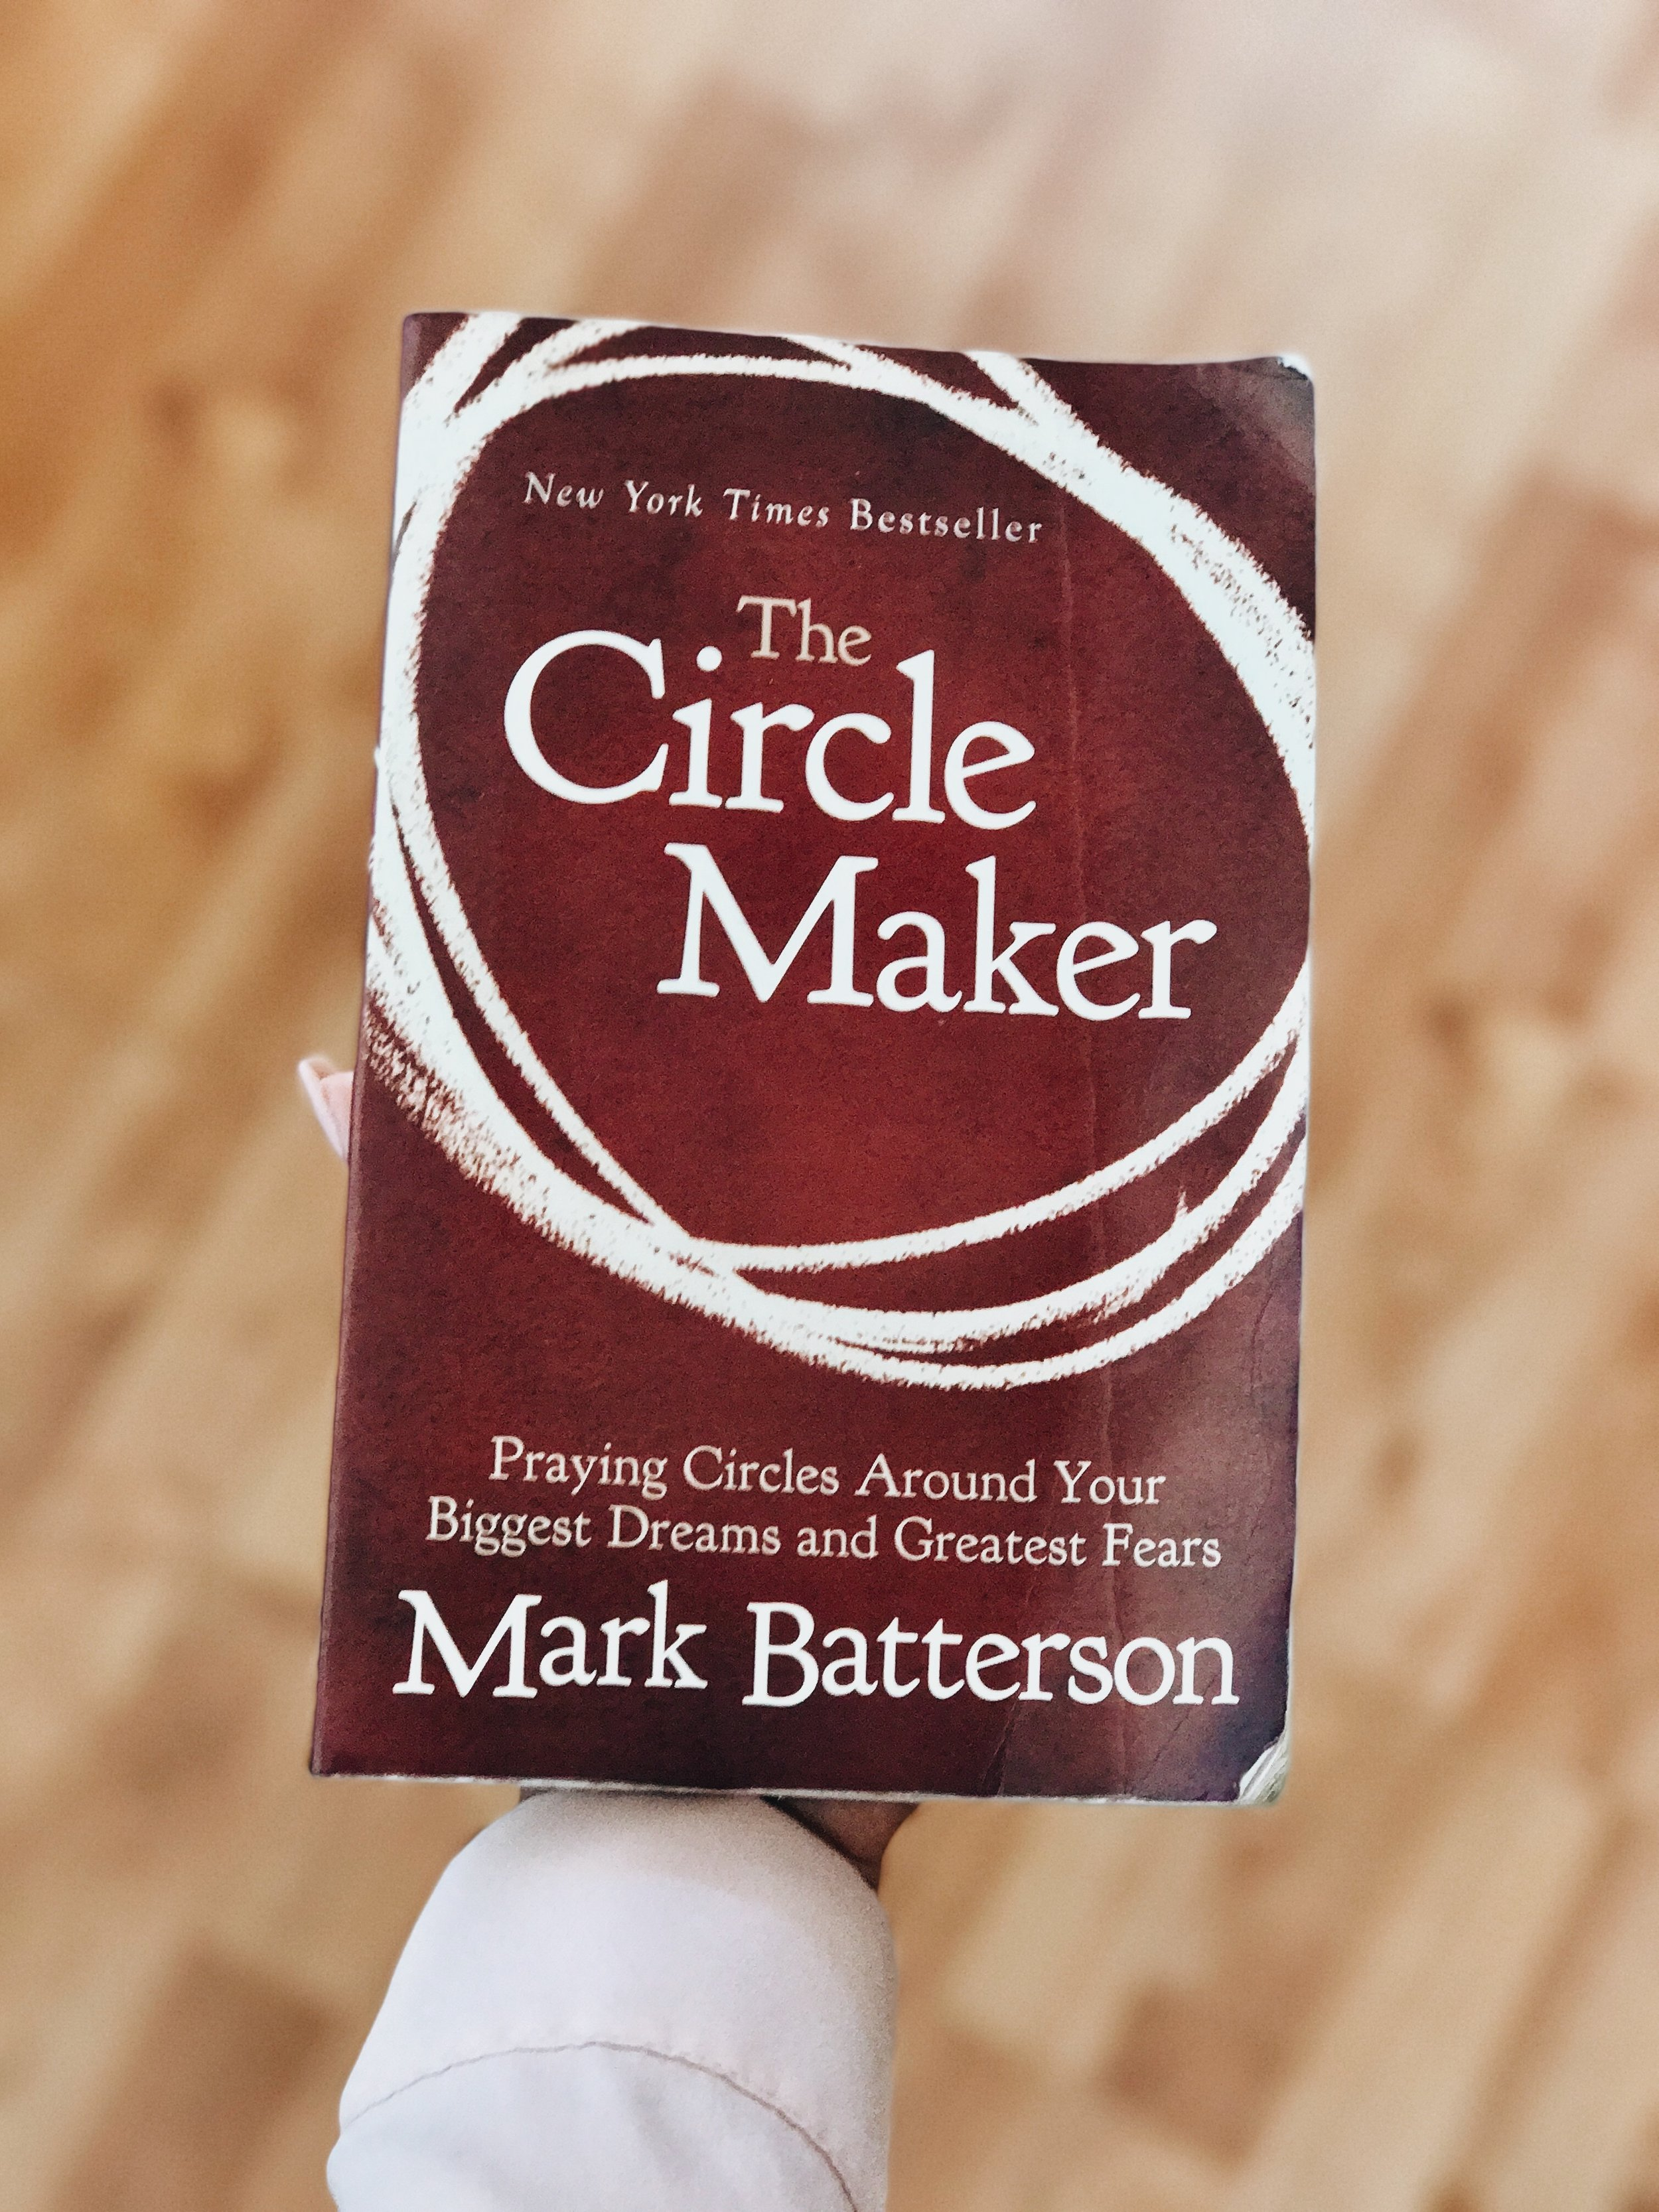 "This book has helped take my prayer game to another level! (There's levels... forreal) Author Mark Batterson, Lead Pastor of National Community Church in Washington, D.C. challenges you to pray big & bold. He begins the book by telling the legend of Honi, the Circle Drawer who was renowned for his ability to successfully pray for rain when there was none. As he tells this amazing legend of Honi, he also gives accounts of many others who have dared to pray seemingly crazy and huge prayers and shares some of his own miracles that can be tied back to a prayer he circled. He gives insight into the power of ""circling"" your prayers and encouragement on staying consistent. He not only talks about prayers answered but even sheds some light on what to do when encountering unanswered prayers. Overall a fantastic book that can definitely challenge you to step your prayer life up! To see some of my takeaways check out my post titled, ""Prayer and The Circle Maker""."